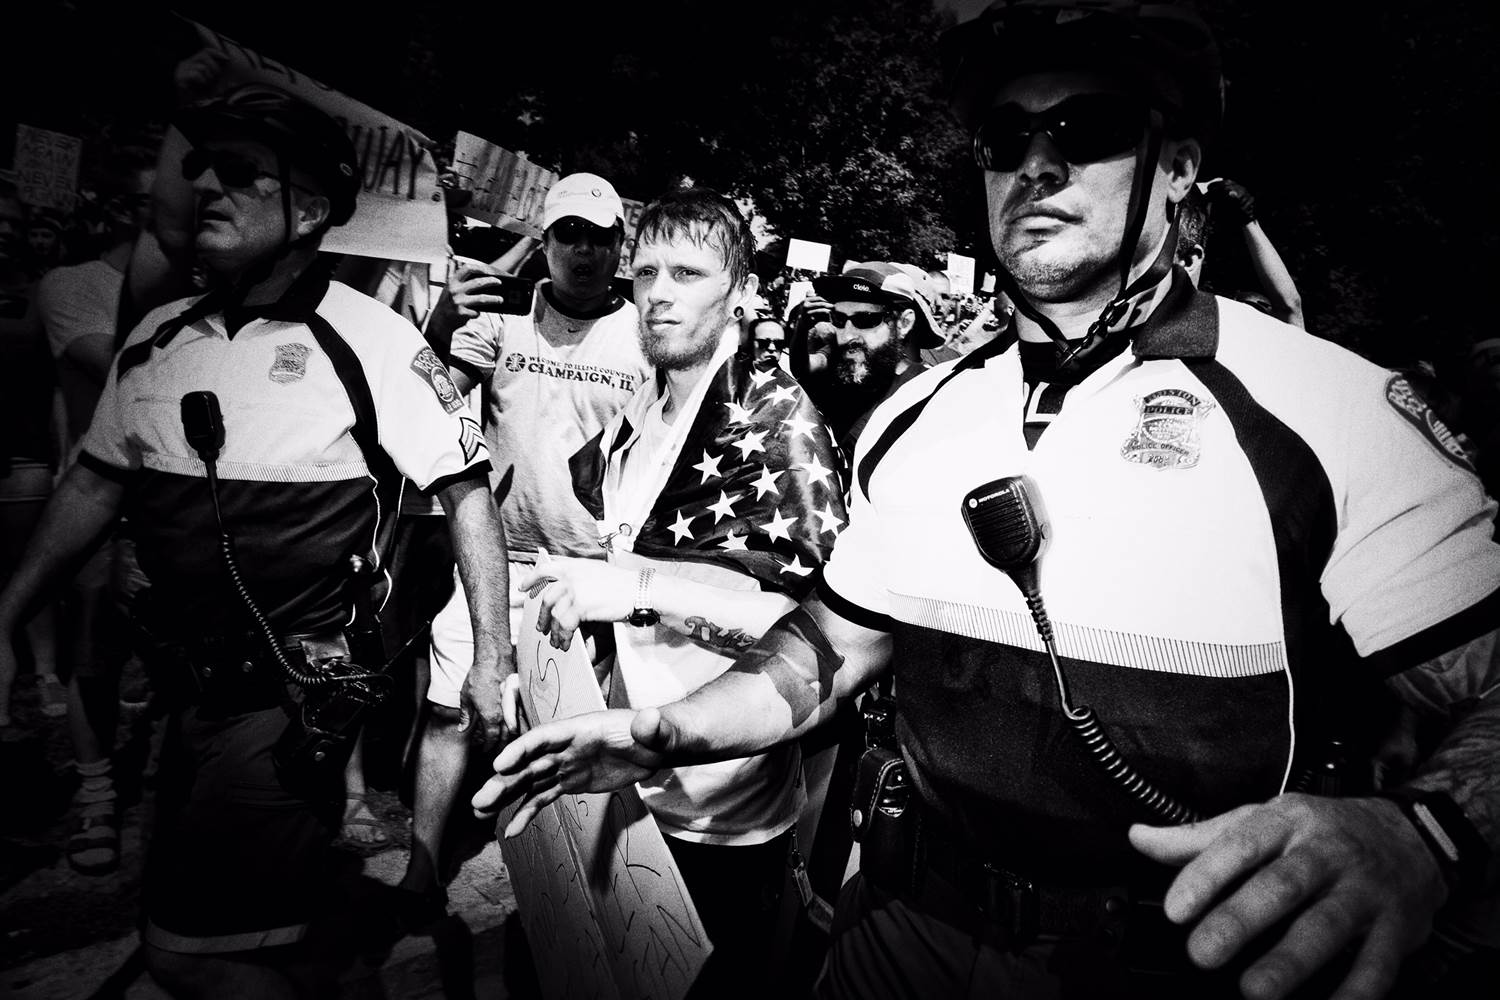 A 'Free Speech Rally' attendee is ushered through the crowd of protesters by police. Mark Peterson / Redux for NBC News